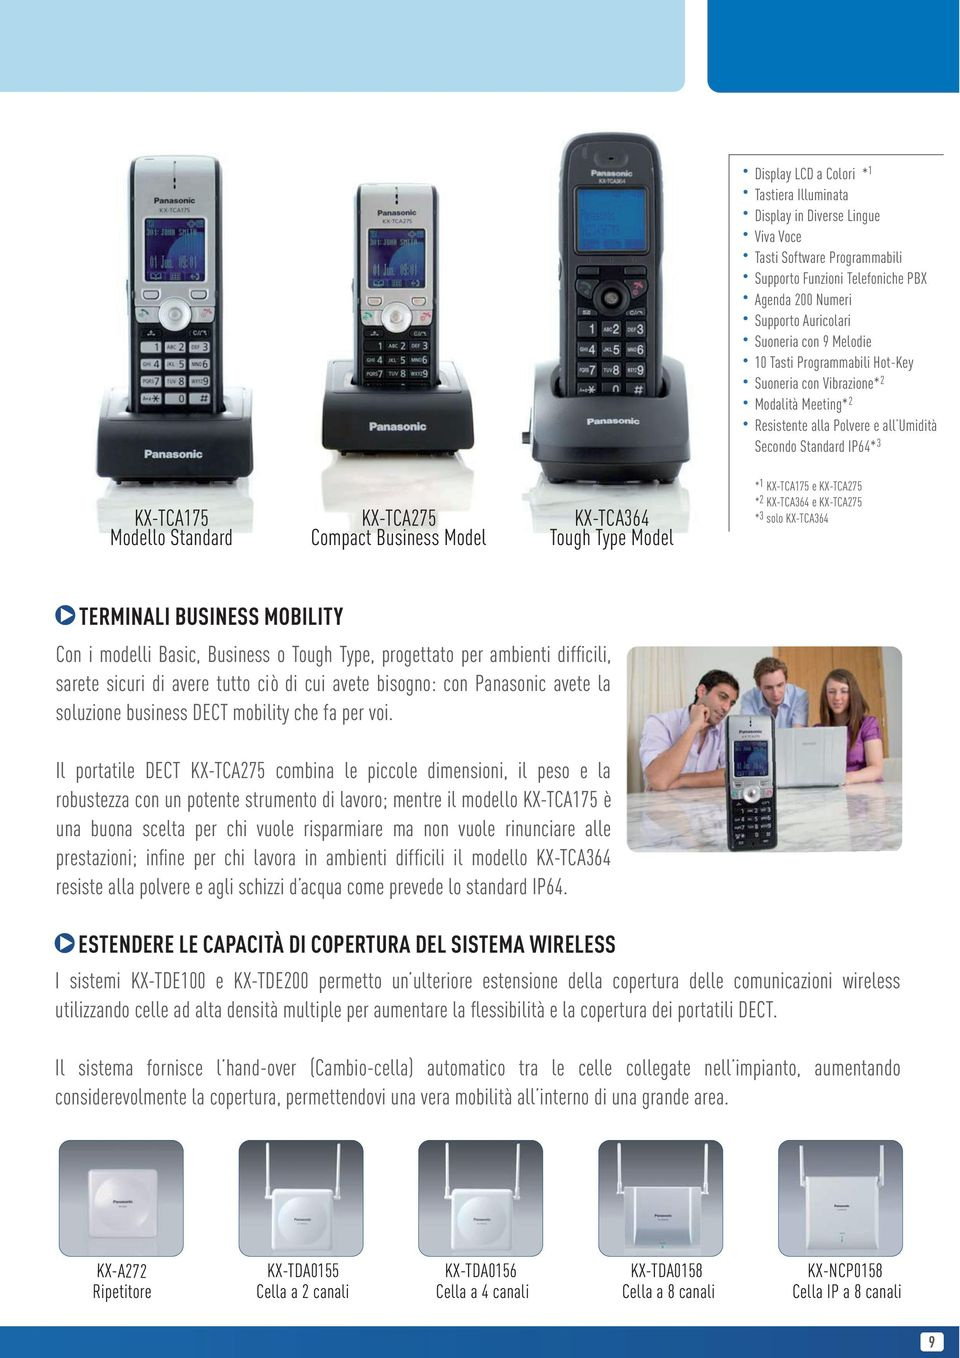 Business Model KX-TCA364 Tough Type Model * 1 KX-TCA175 e KX-TCA275 * 2 KX-TCA364 e KX-TCA275 * 3 solo KX-TCA364 TERMINALI BUSINESS MOBILITY Con i modelli Basic, Business o Tough Type, progettato per